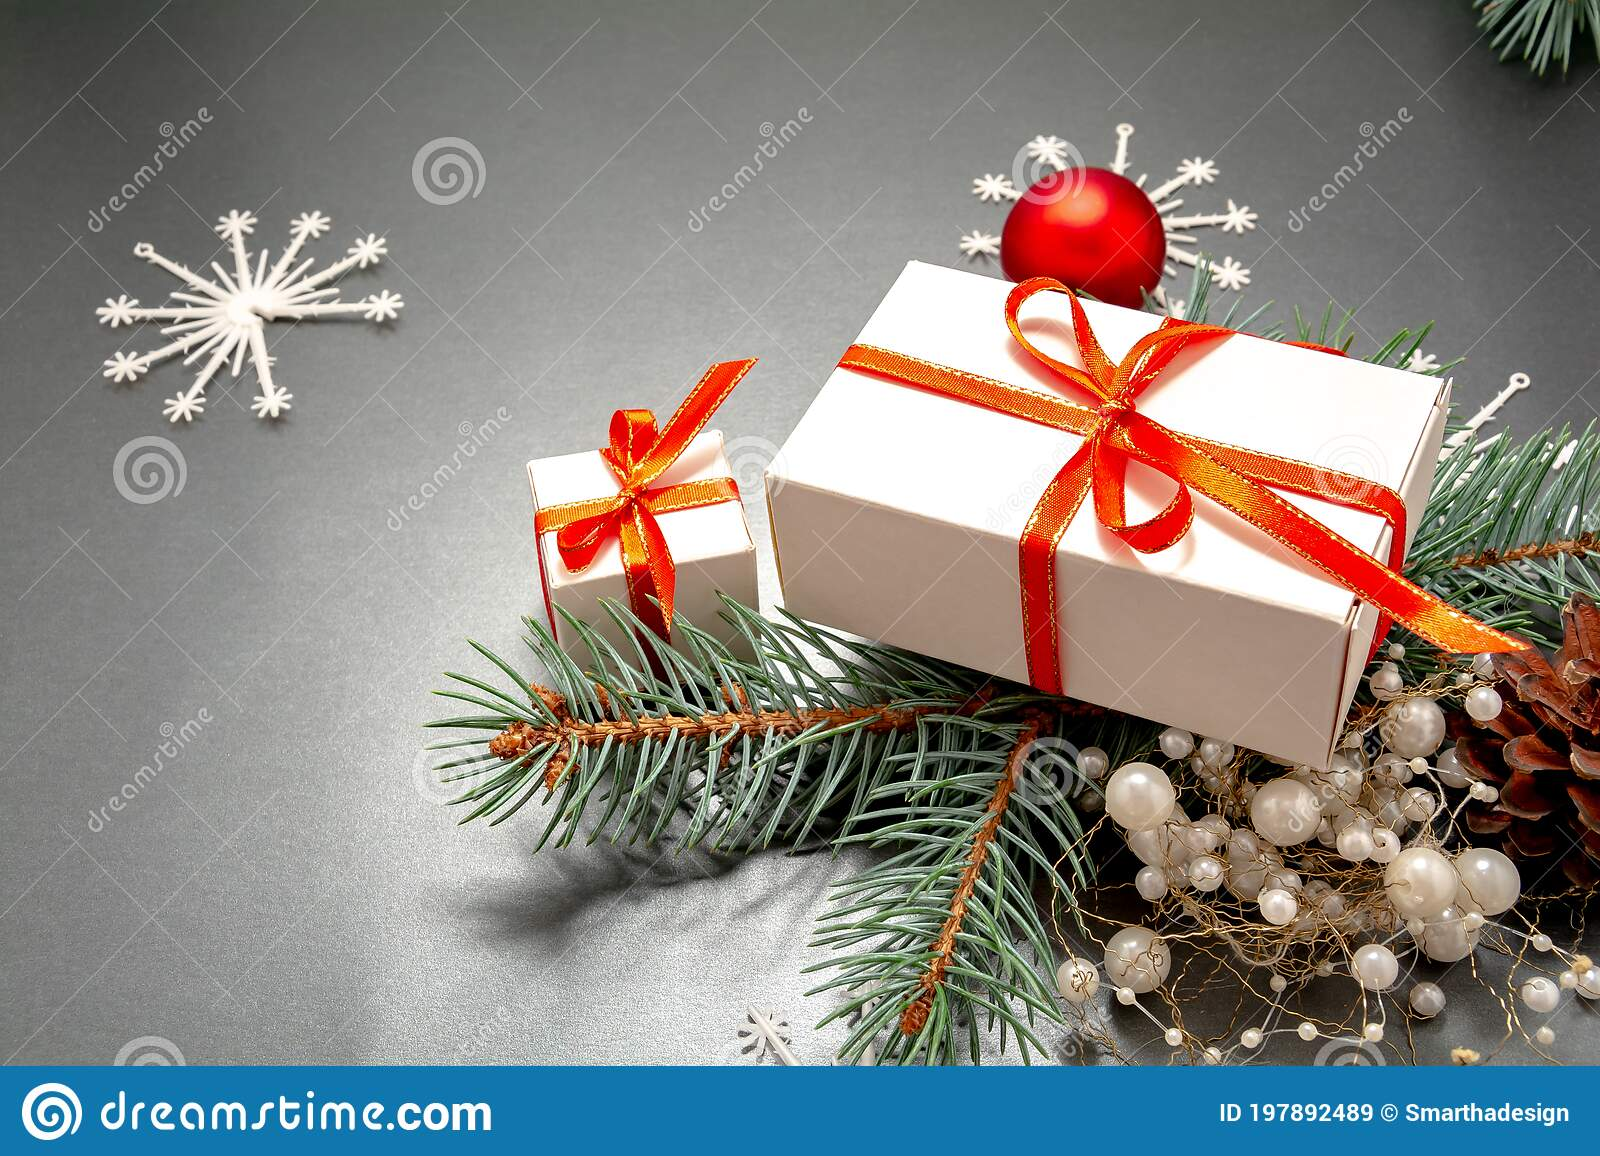 Christmas Ribbon 2021 2021 Happy New Year Merry Christmas Decorations Flatlay Gift Boxes Ribbon Balls Spruce Branch Snowflakes Top View Stock Image Image Of Banner Holiday 197892489